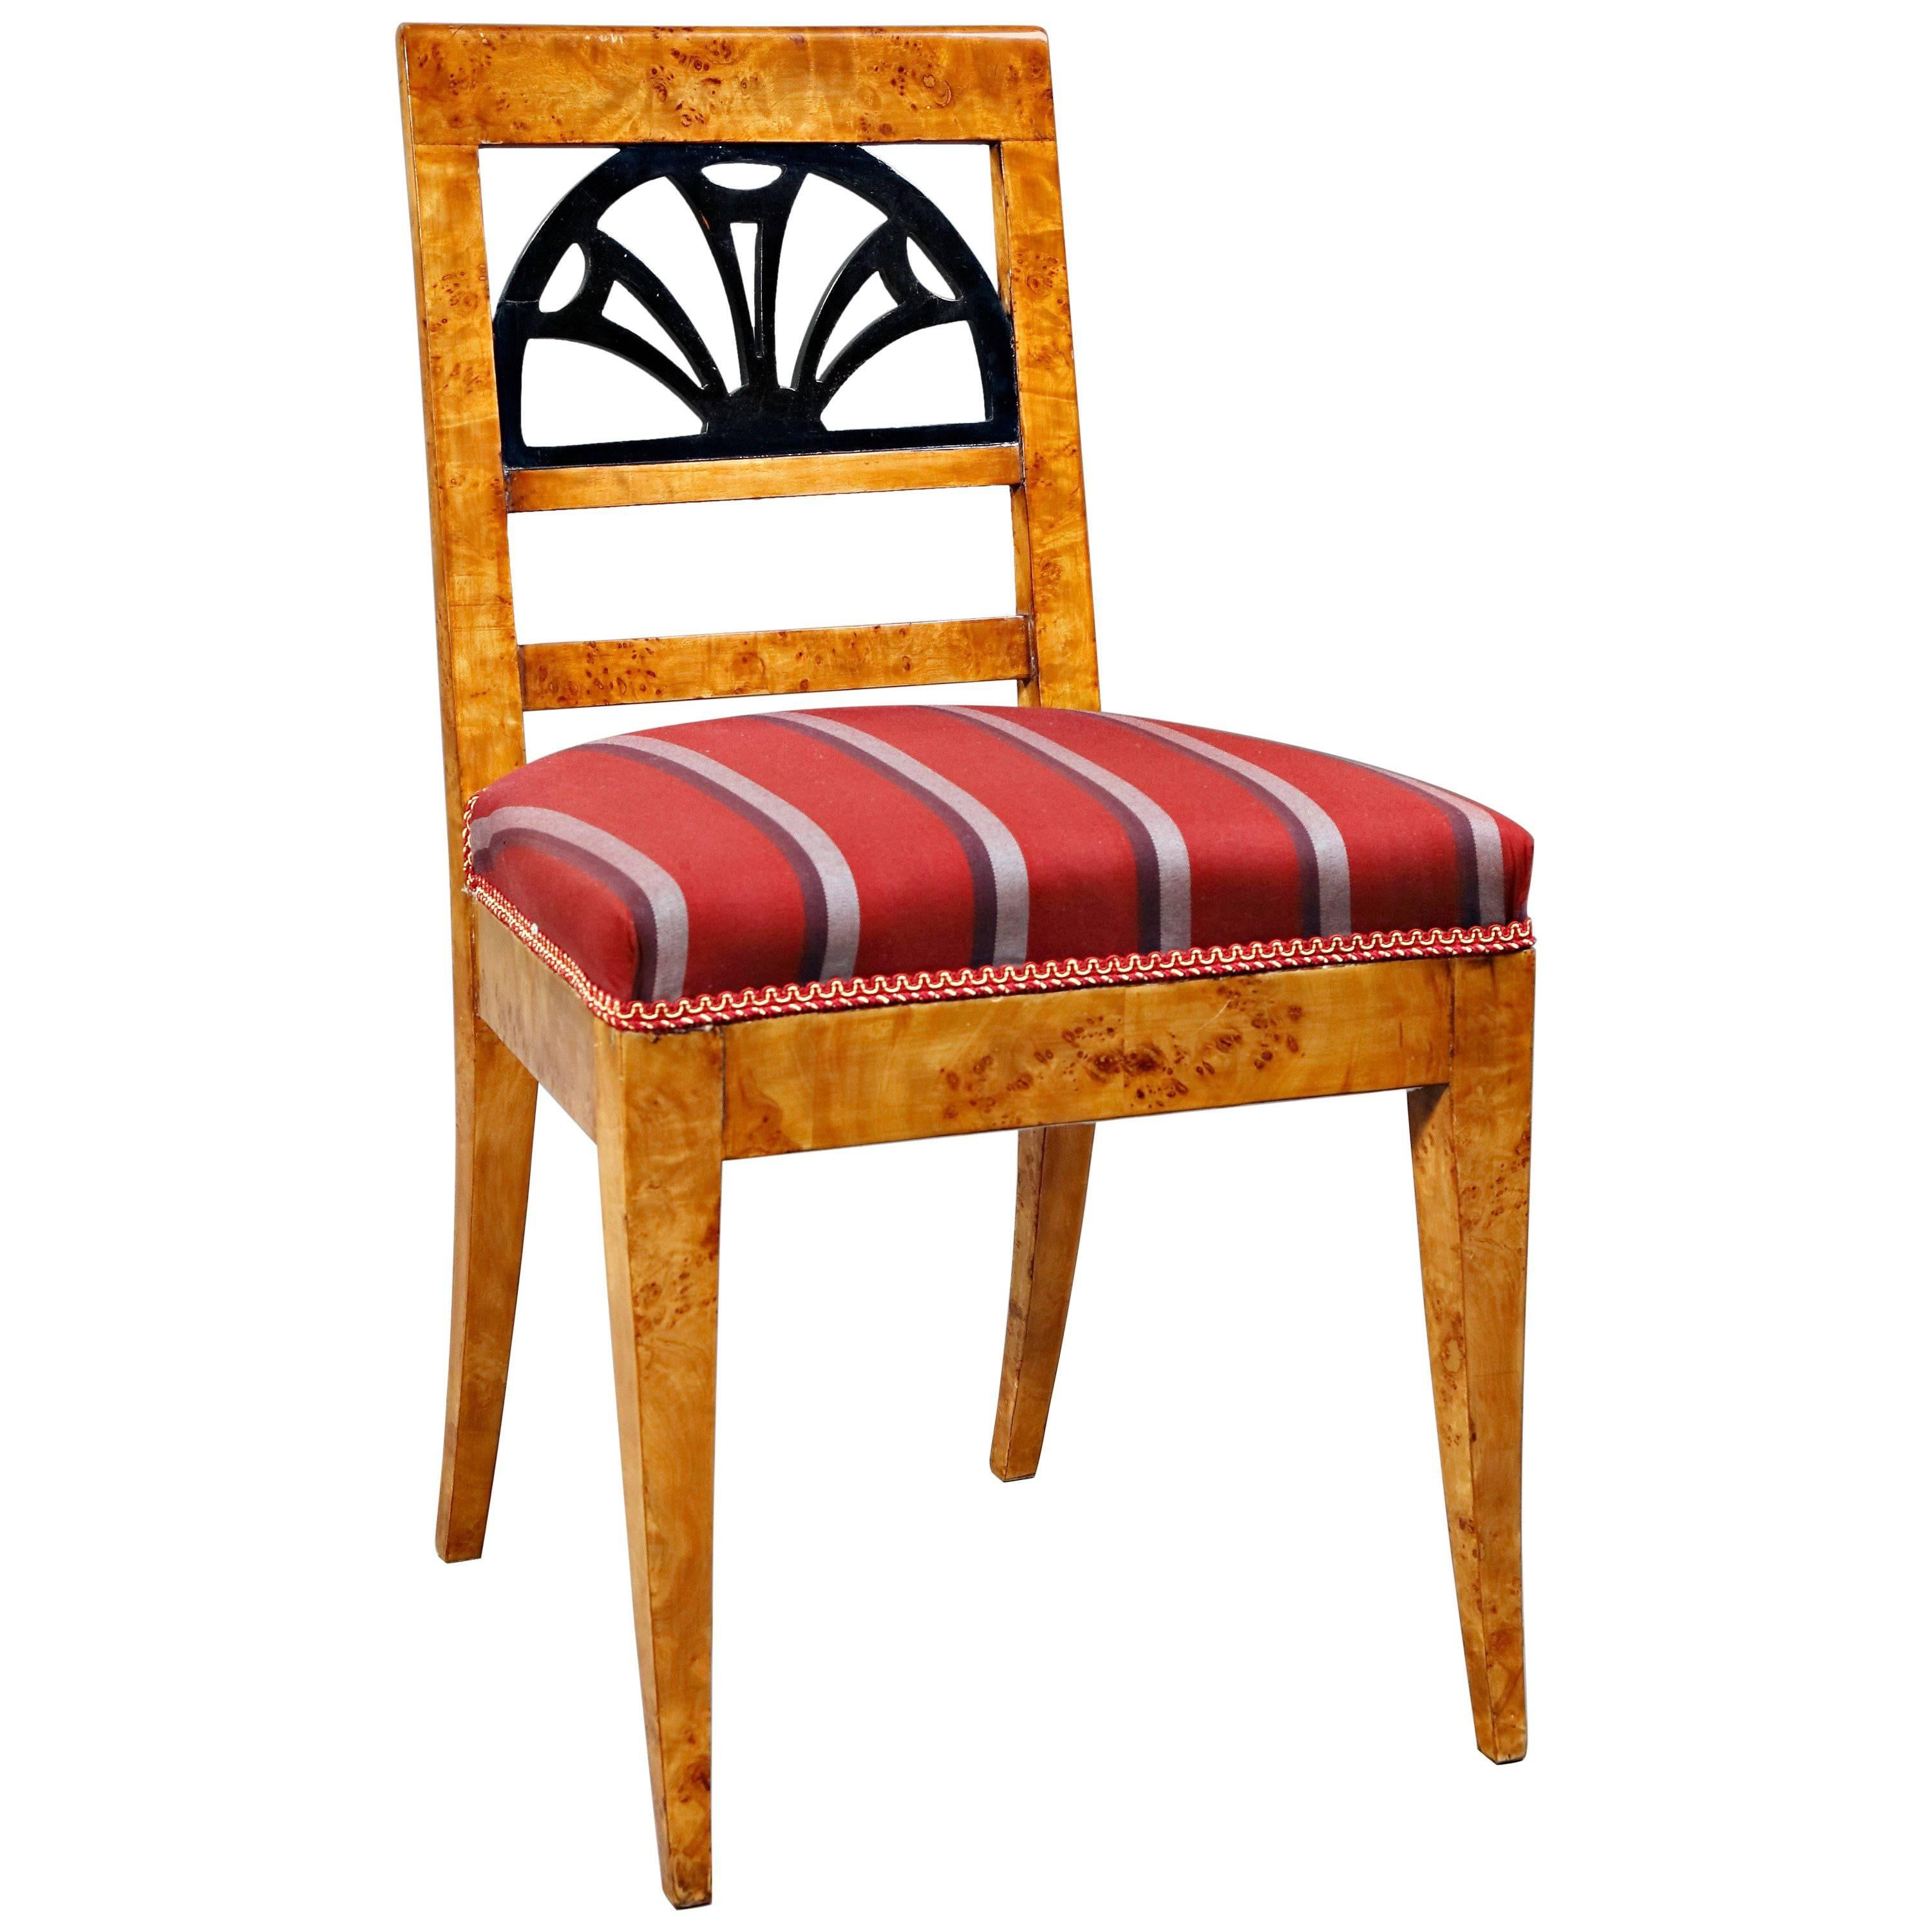 20th Century Elegant Classic Chair In The Biedermeier Style